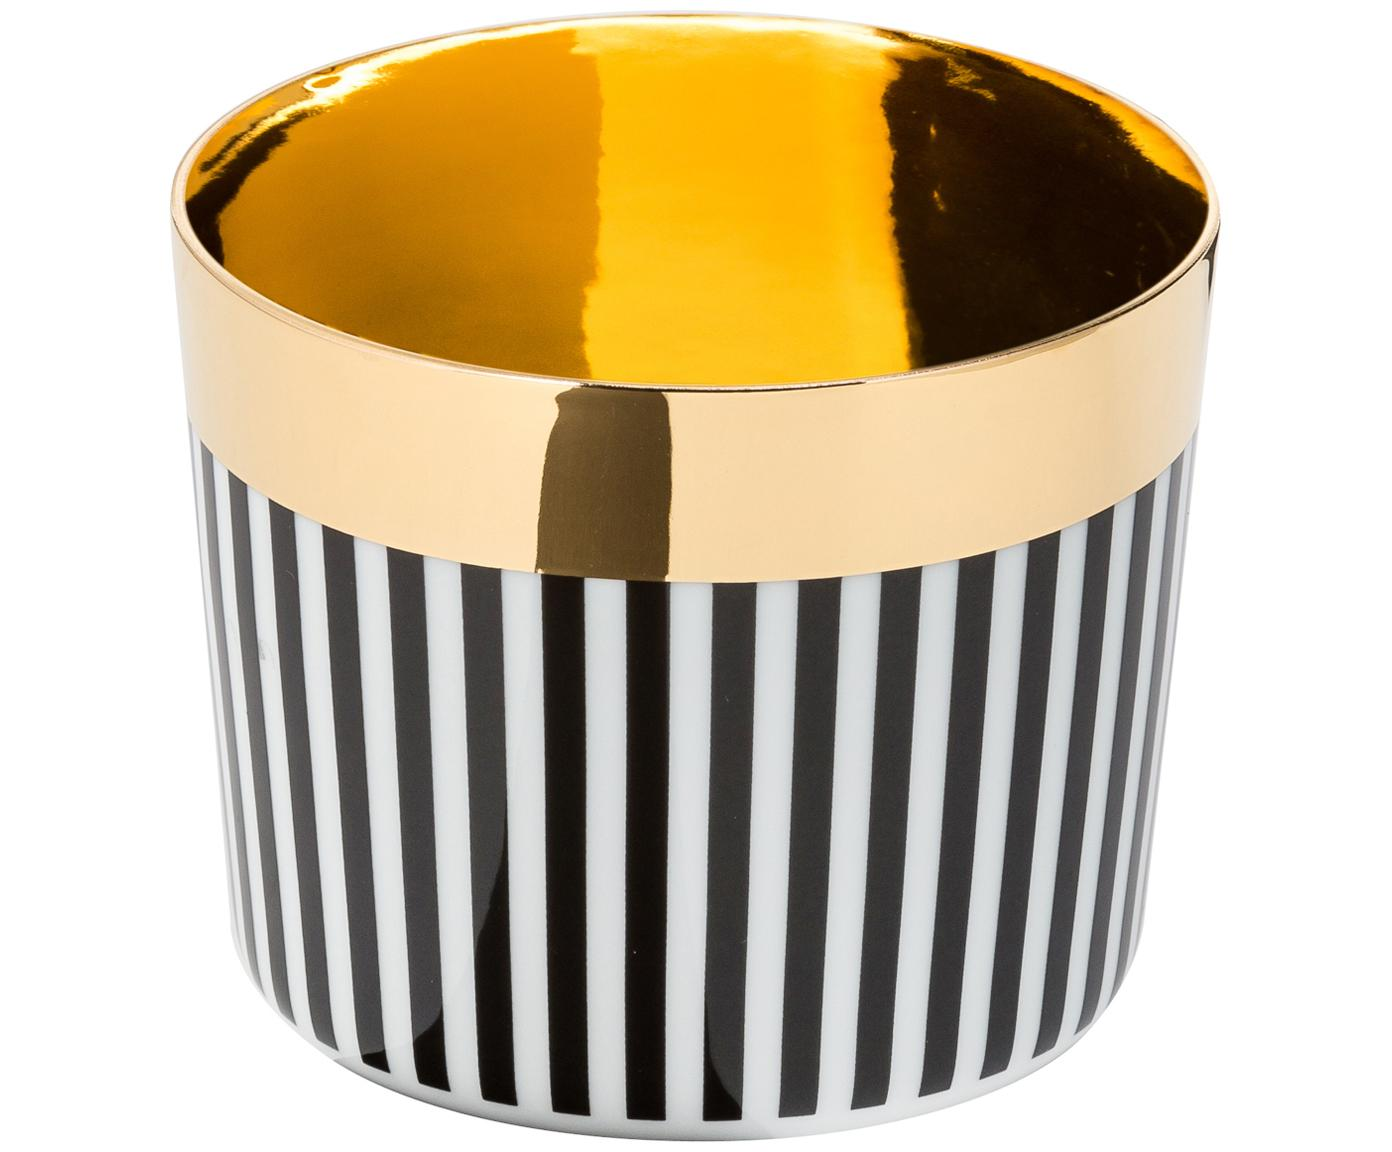 Vaso de champán de porcelana Sip of Gold, Borde: dorado, Negro, blanco, dorado, 300 ml